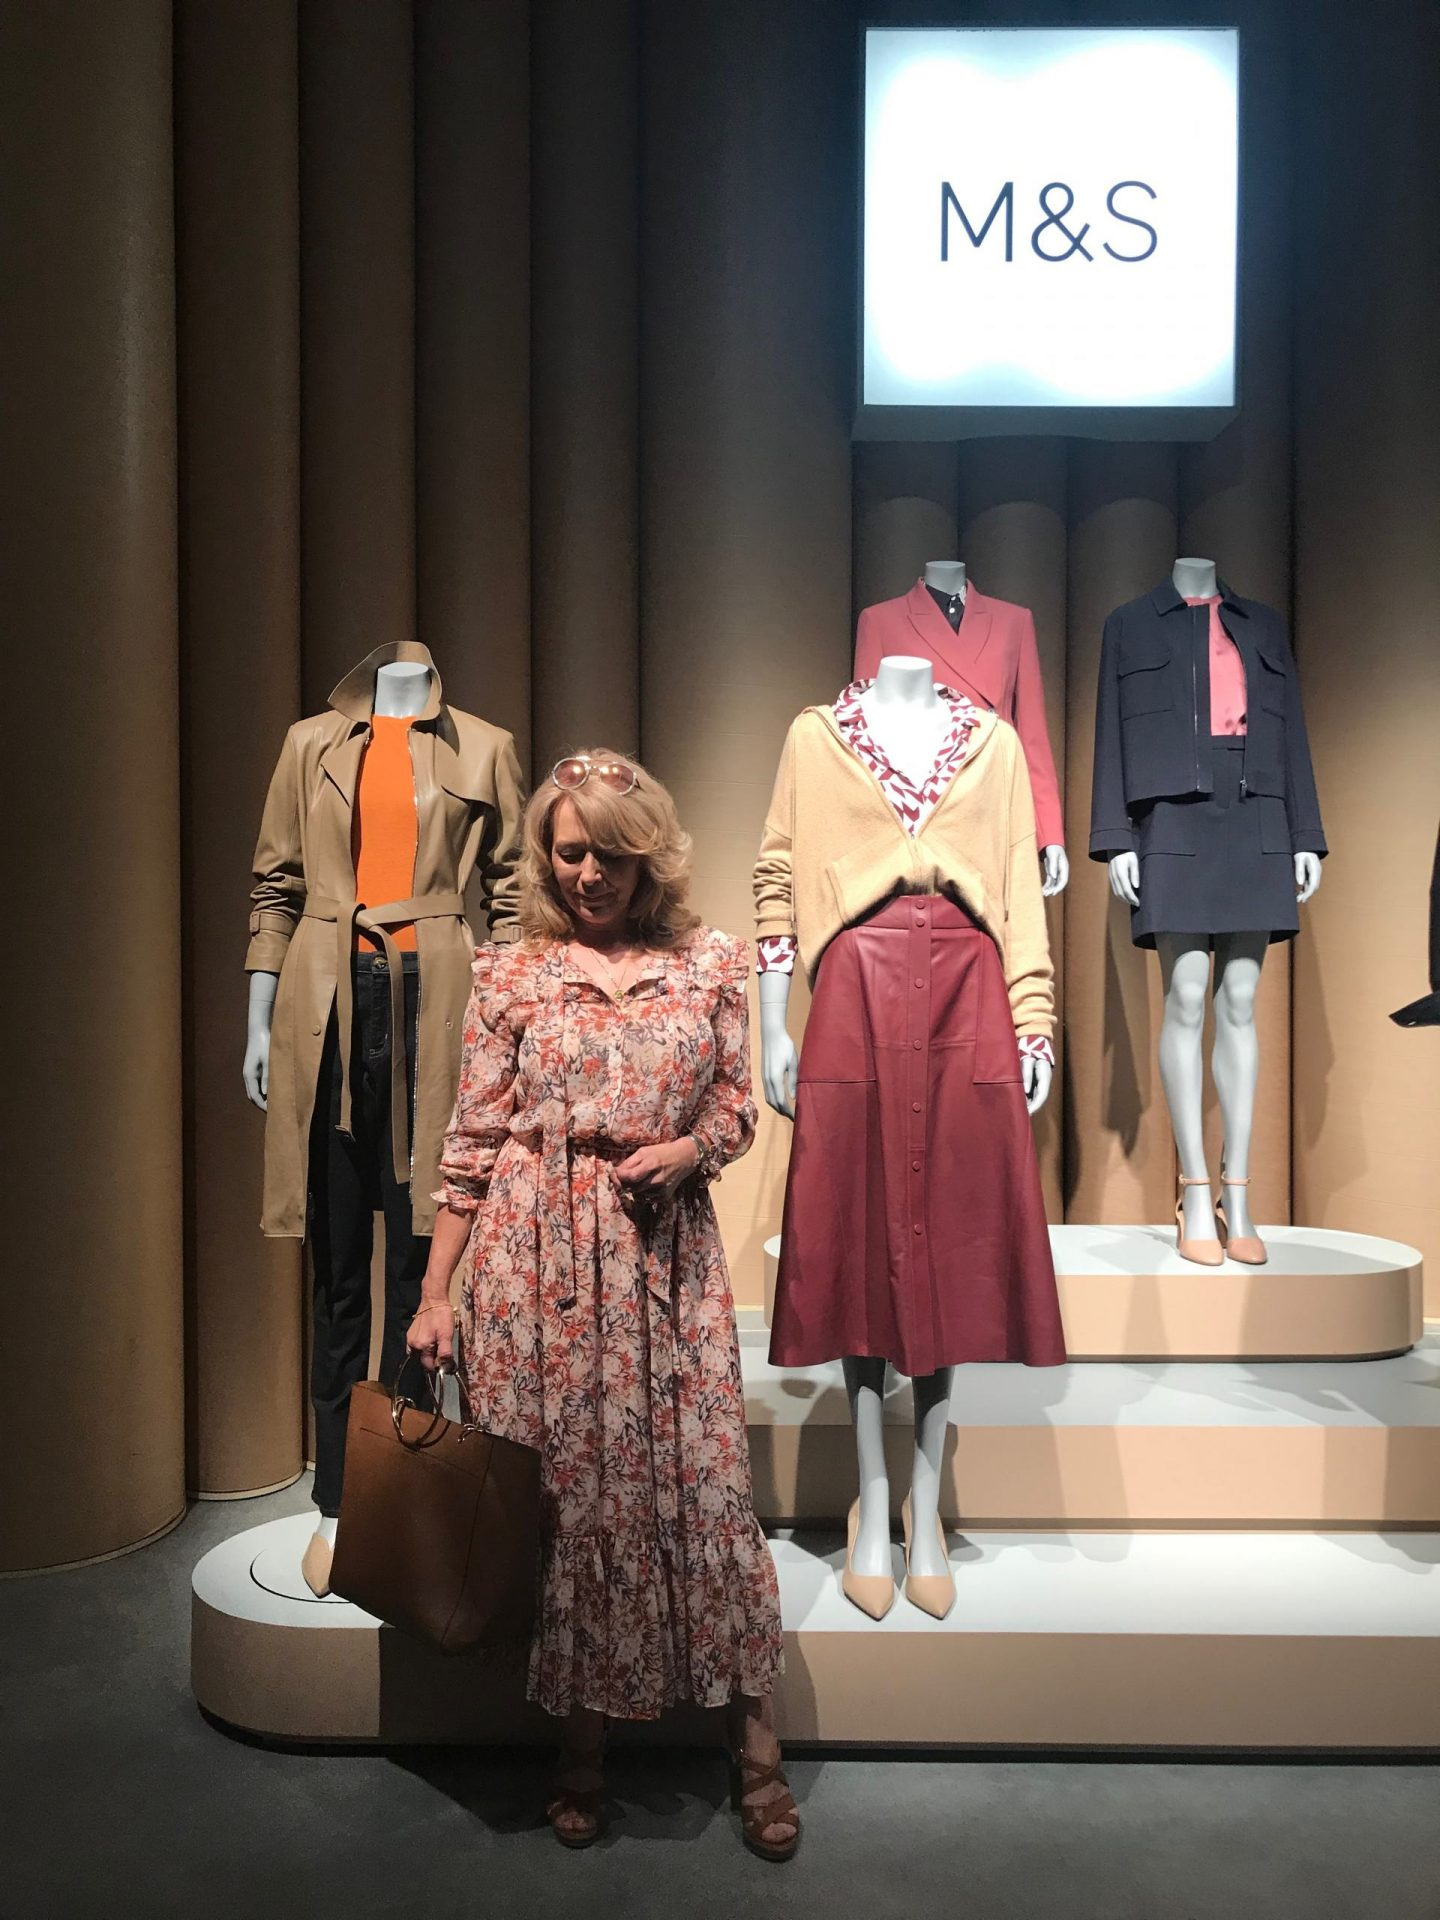 A preview of Marks And Spencer's Autumn Winter collection. I think they've got it in the bag this year. My purse is at the ready! Read on for the preview